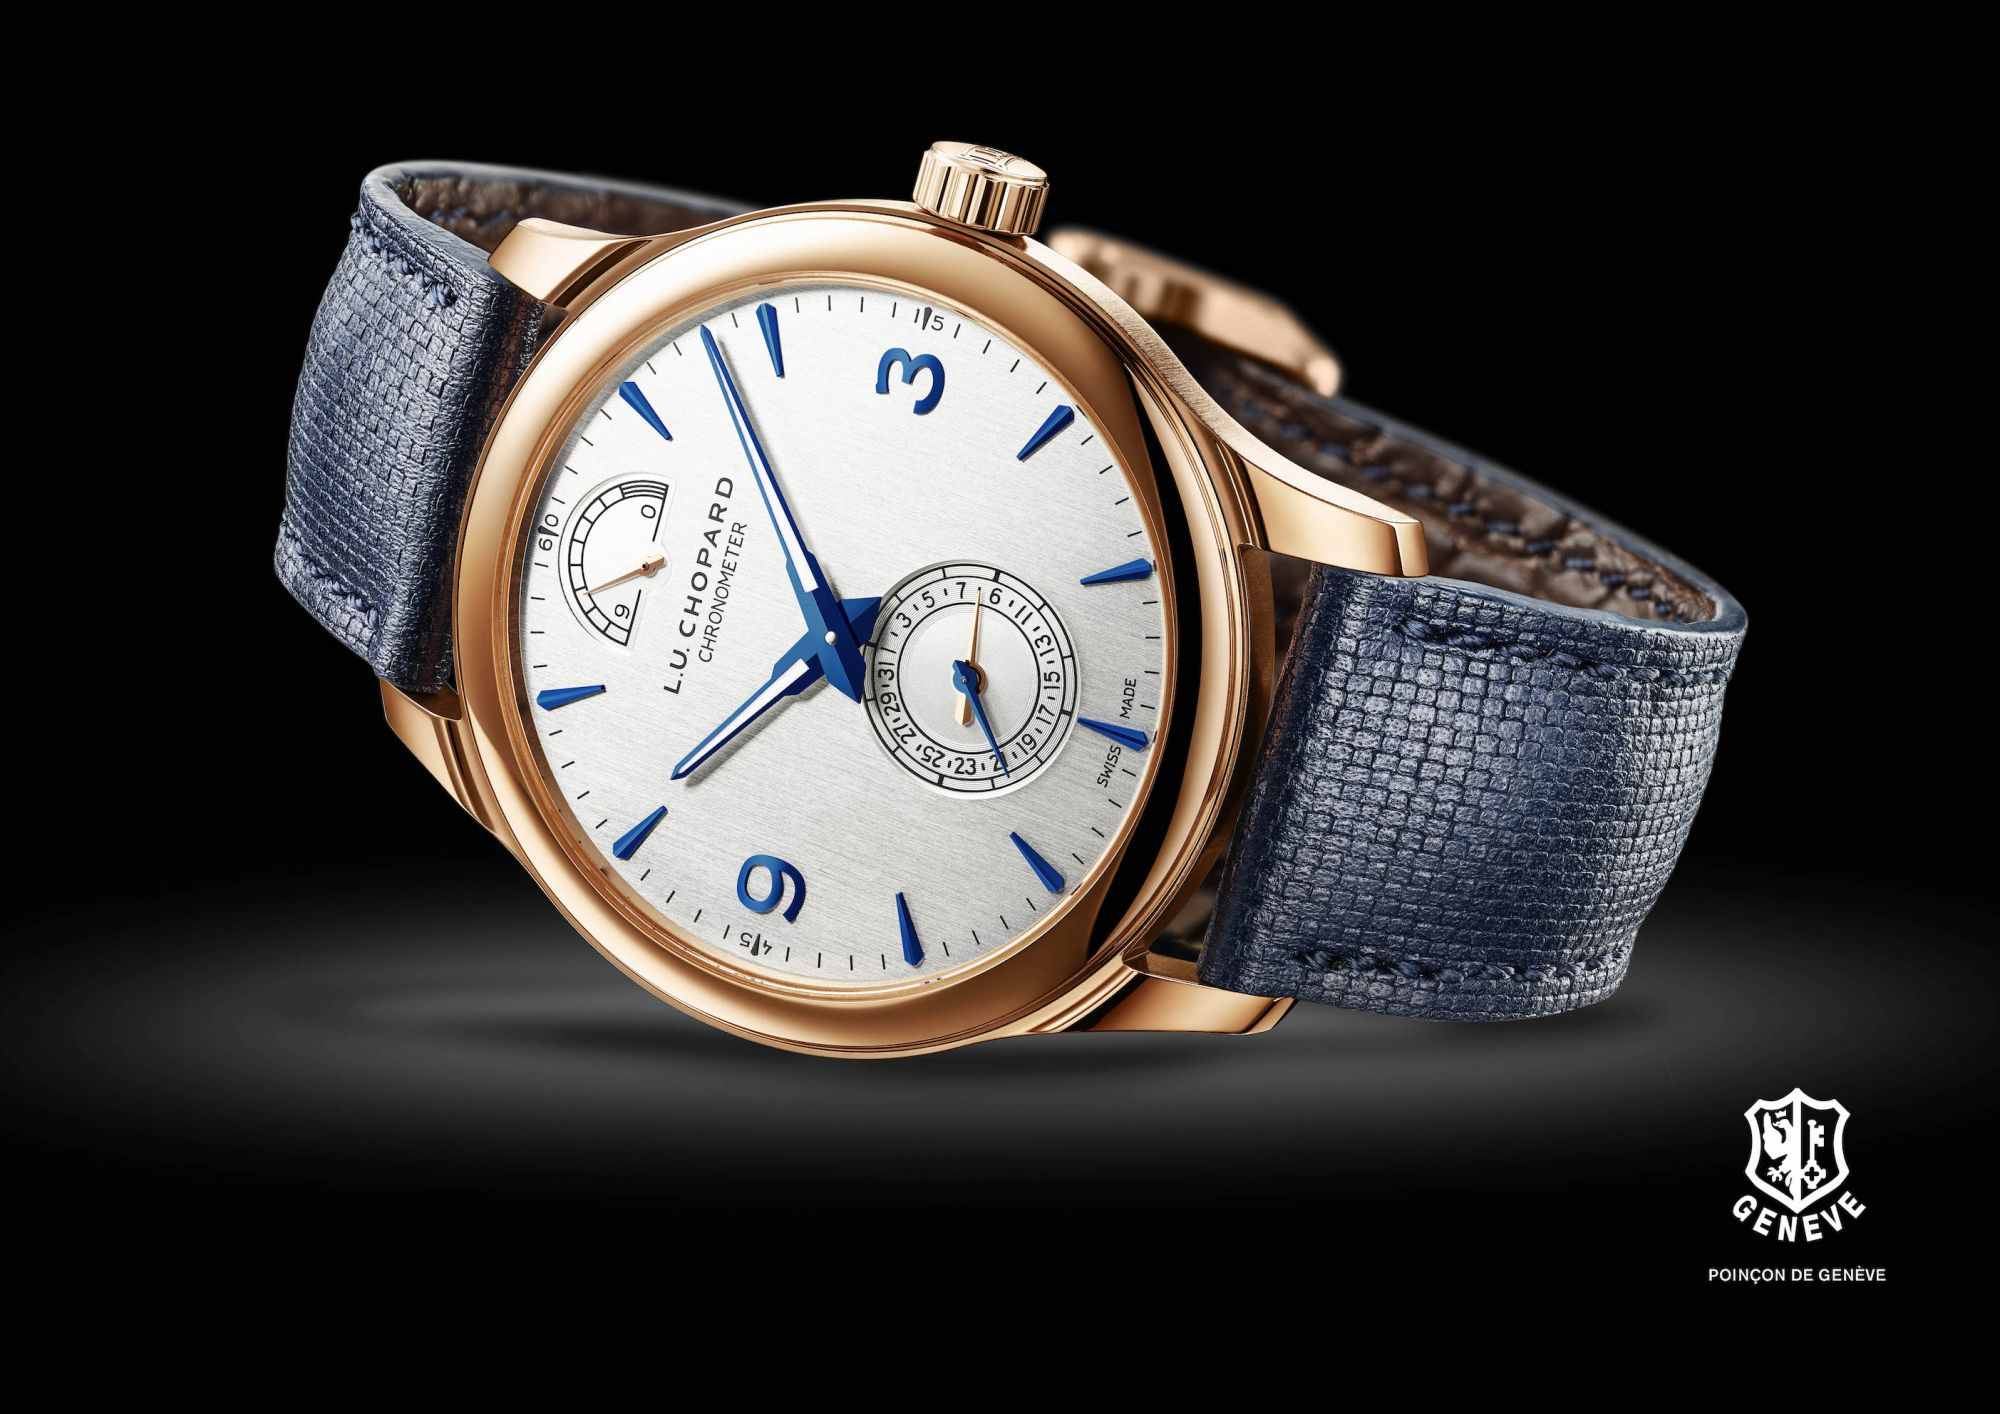 The Chopard L.U.C Quattro watch comes with a sporty blue calfskin leather strap. (Photo: Courtesy of Chopard)